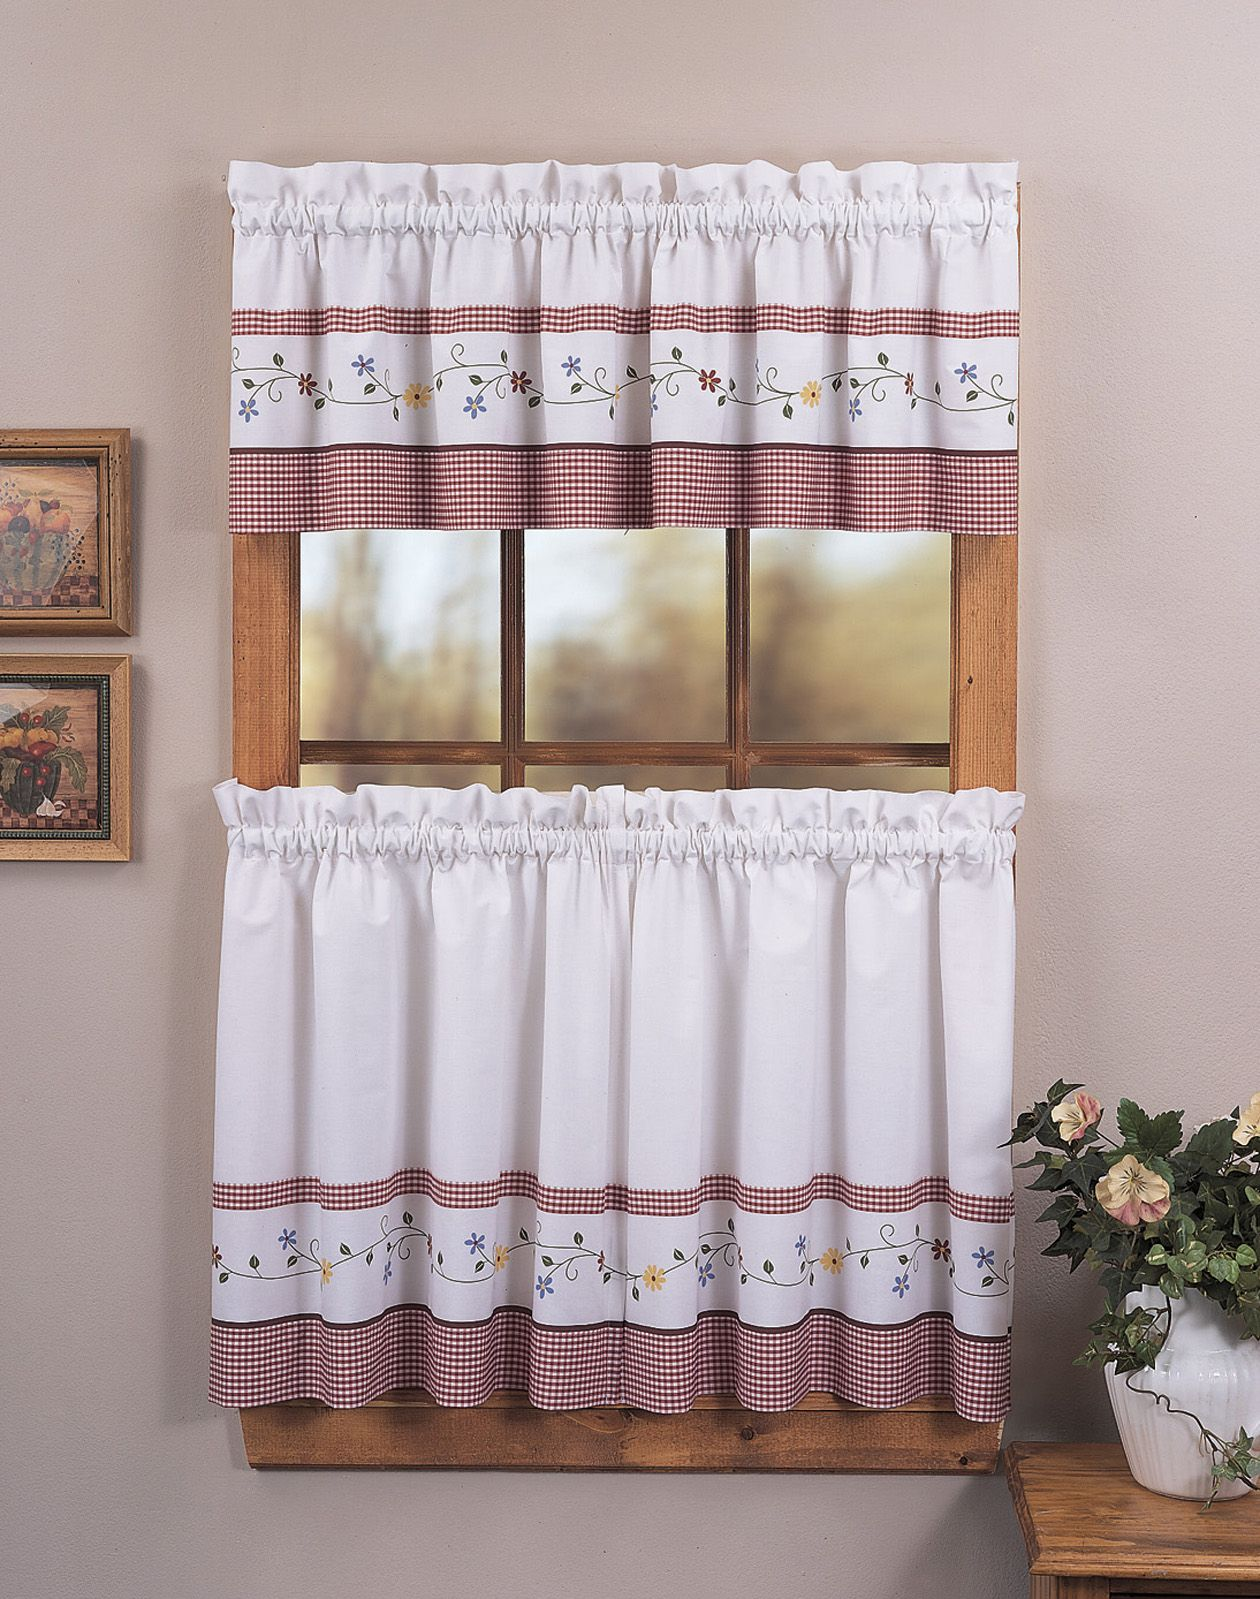 Window top decor  purple kitchen curtains window treatments ueueue to view further for